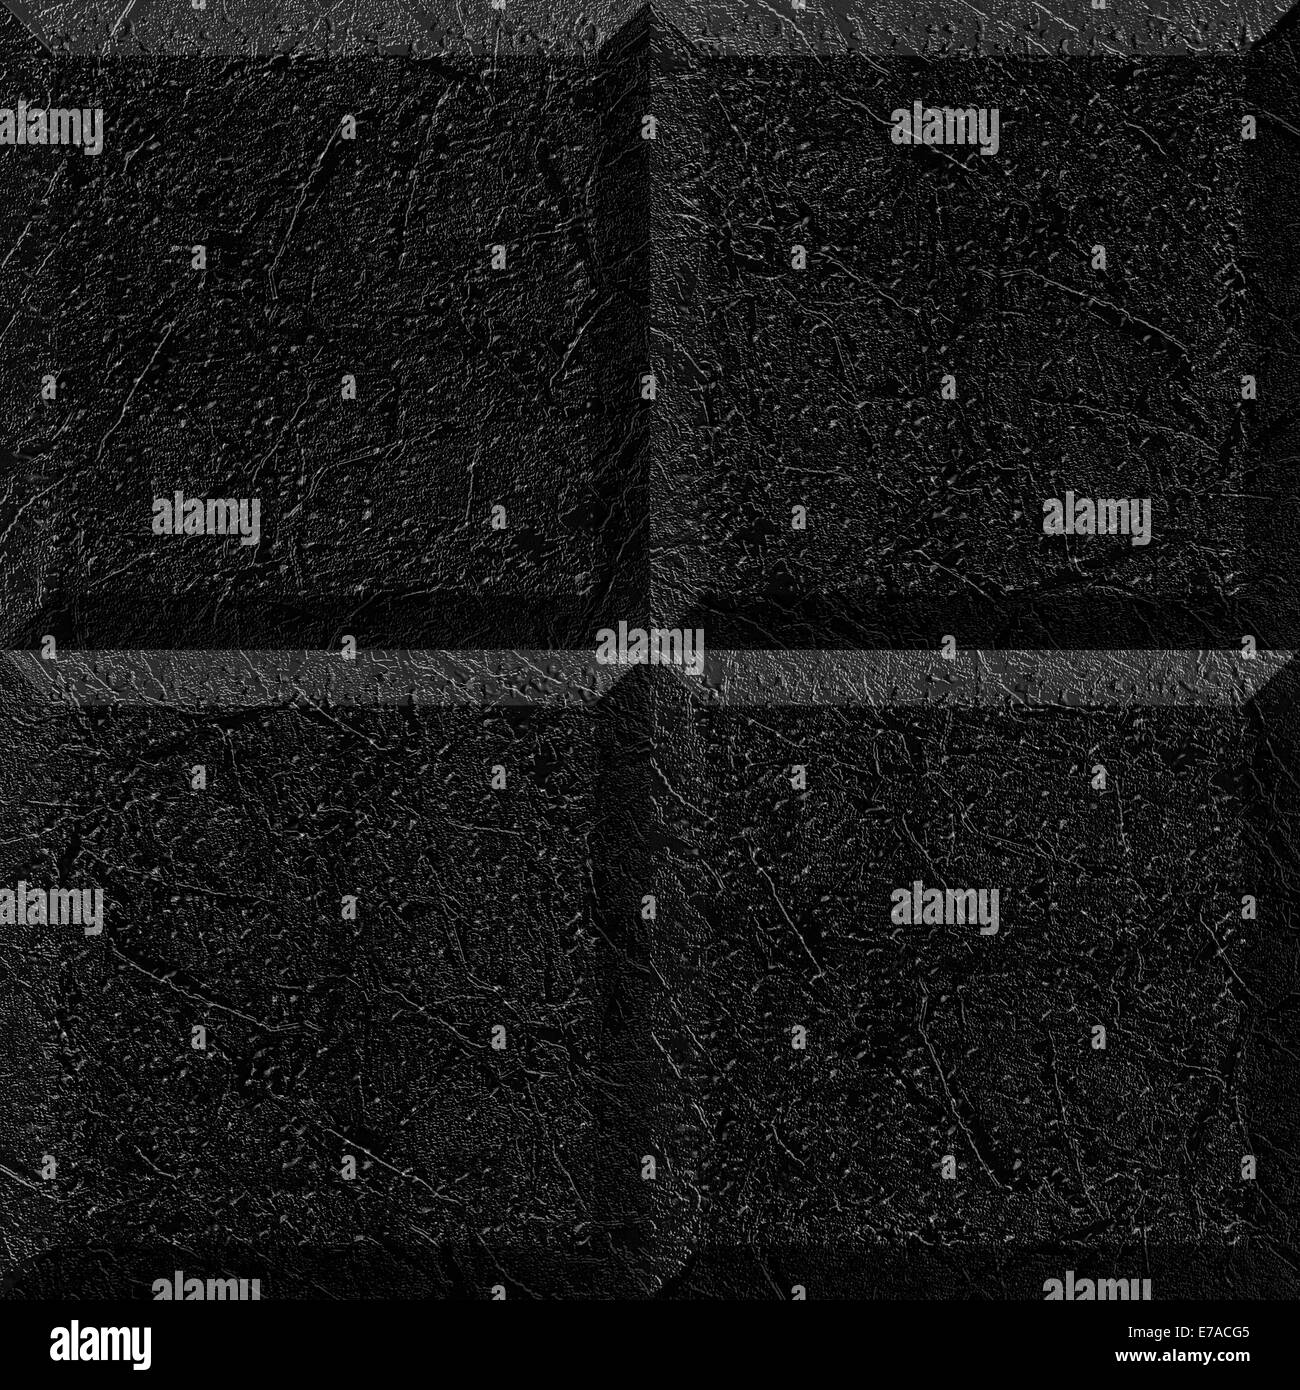 Texture of a ceramic tile of black color marble granite or coal stock photo texture of a ceramic tile of black color marble granite or coal dailygadgetfo Gallery